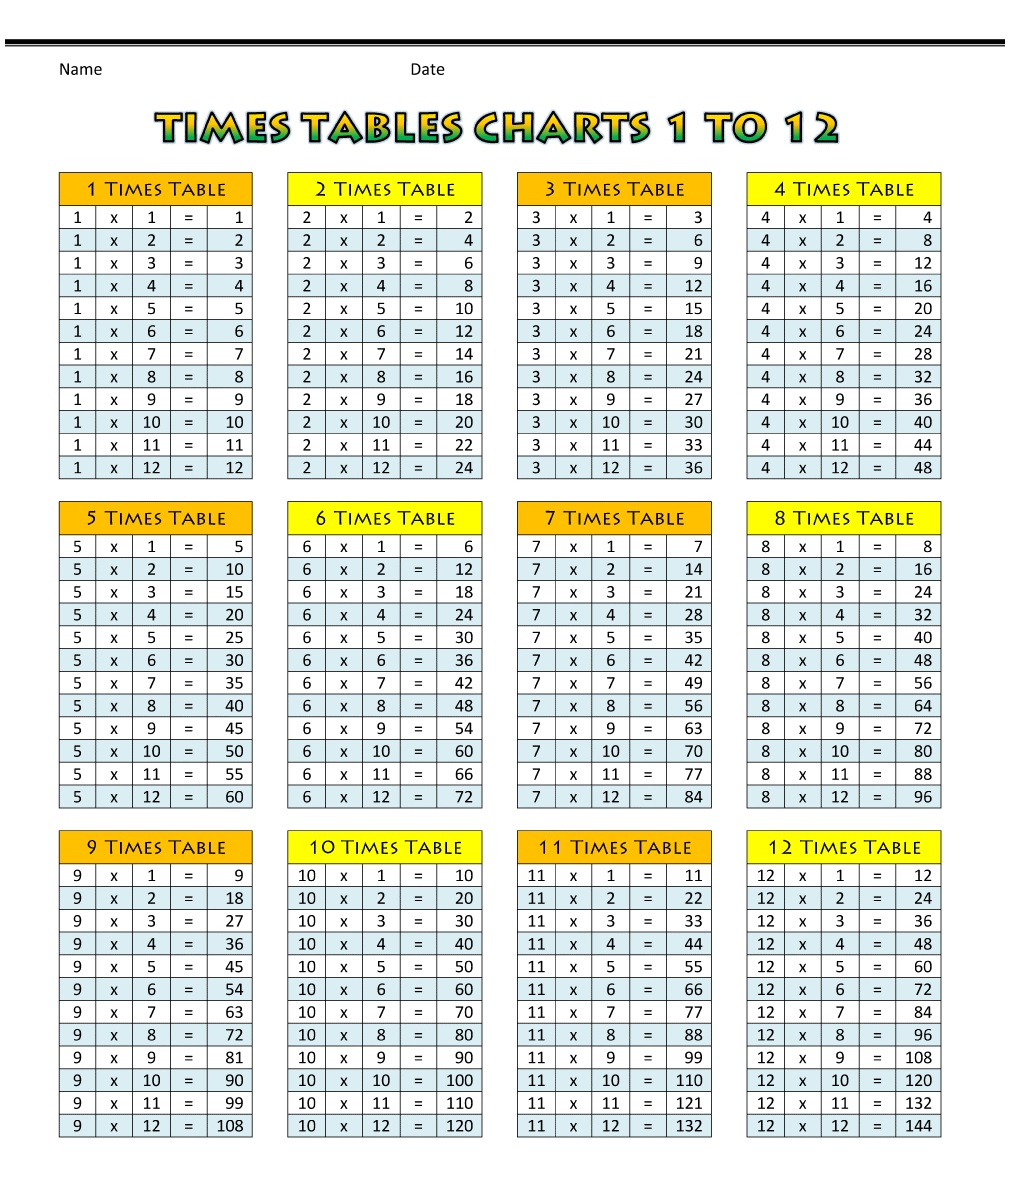 Times Table Chart 1-12 for Kids